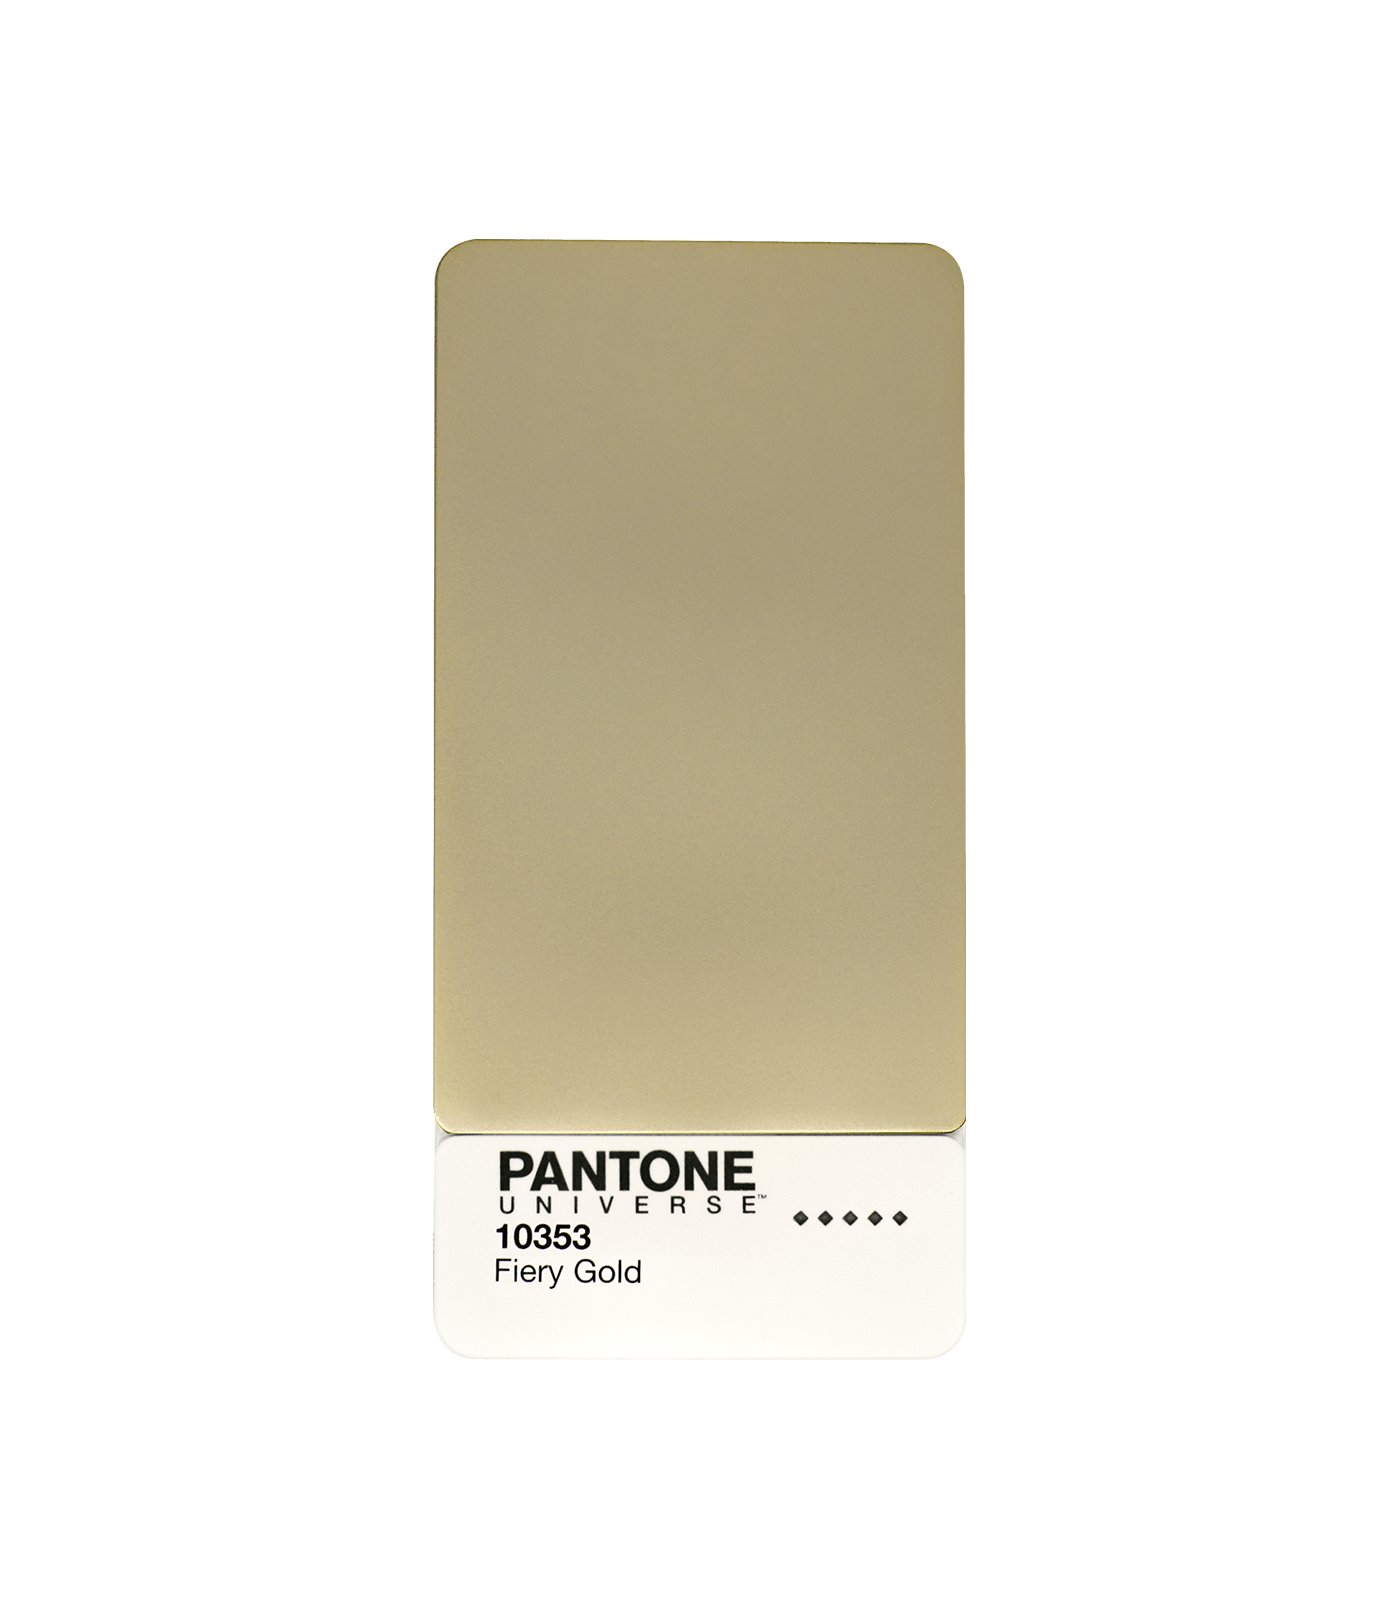 Gold Metallic Pantone Colour for Print Graphic Design Stack Exchange